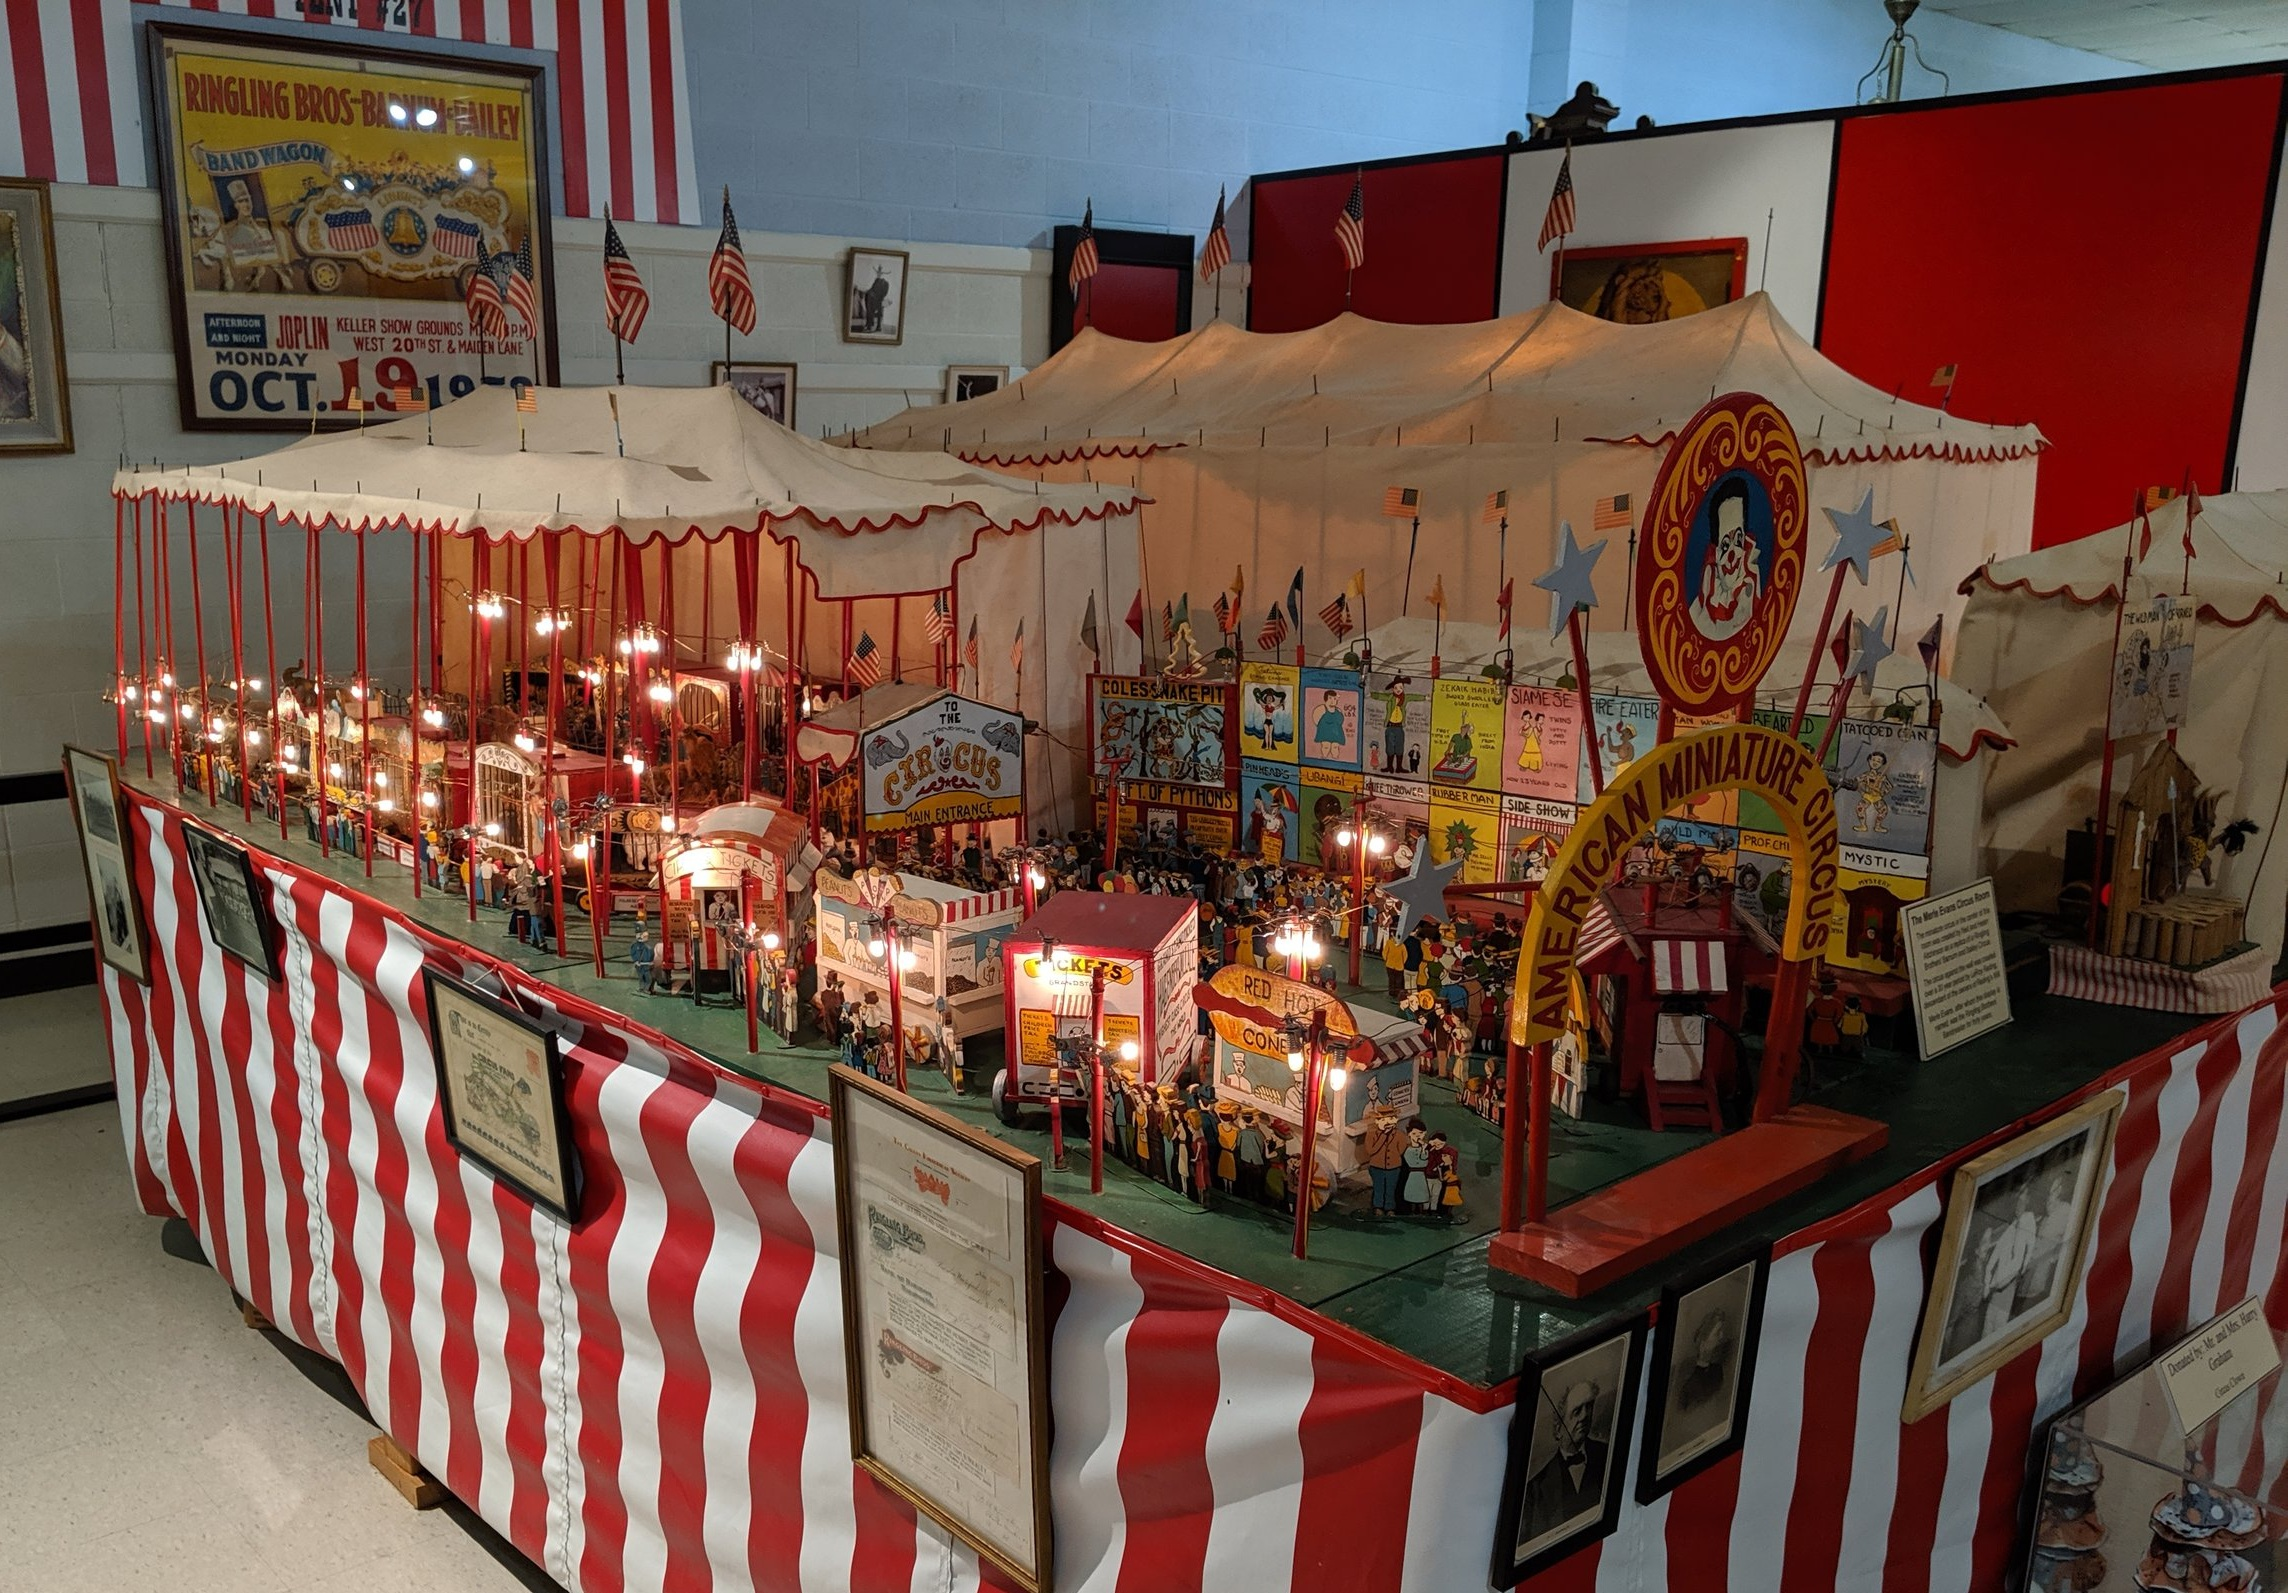 There's a miniature circus exhibit and the…